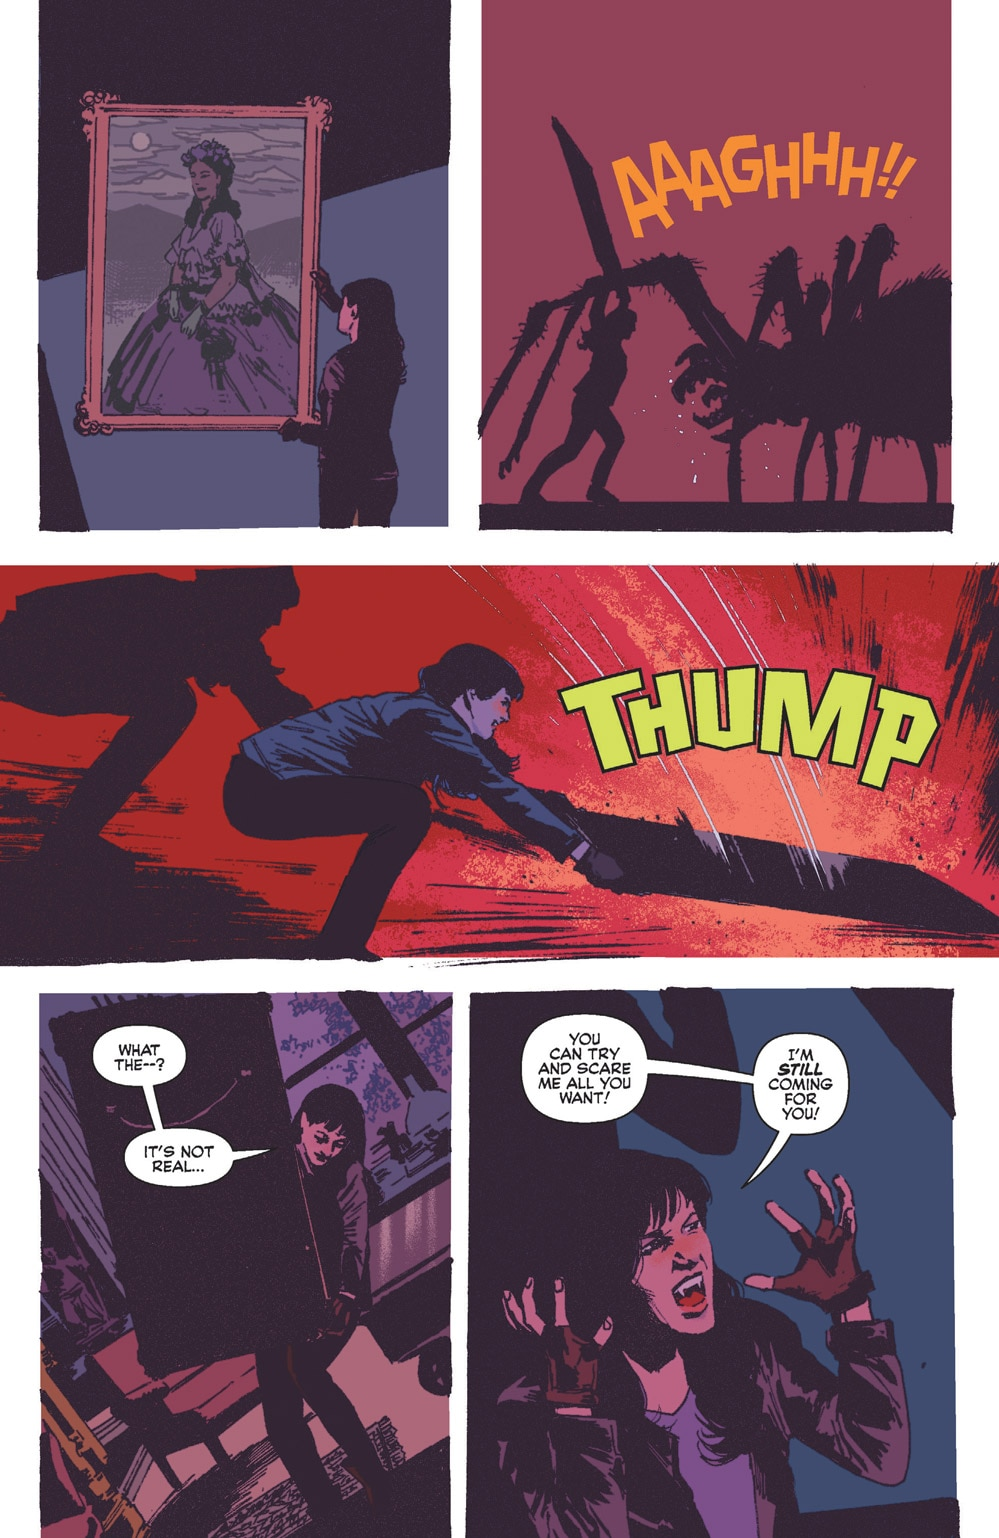 Vampironica 05 5 - Exclusive VAMPIRONICA #5 Preview is a Descent Into a Pure Nightmare